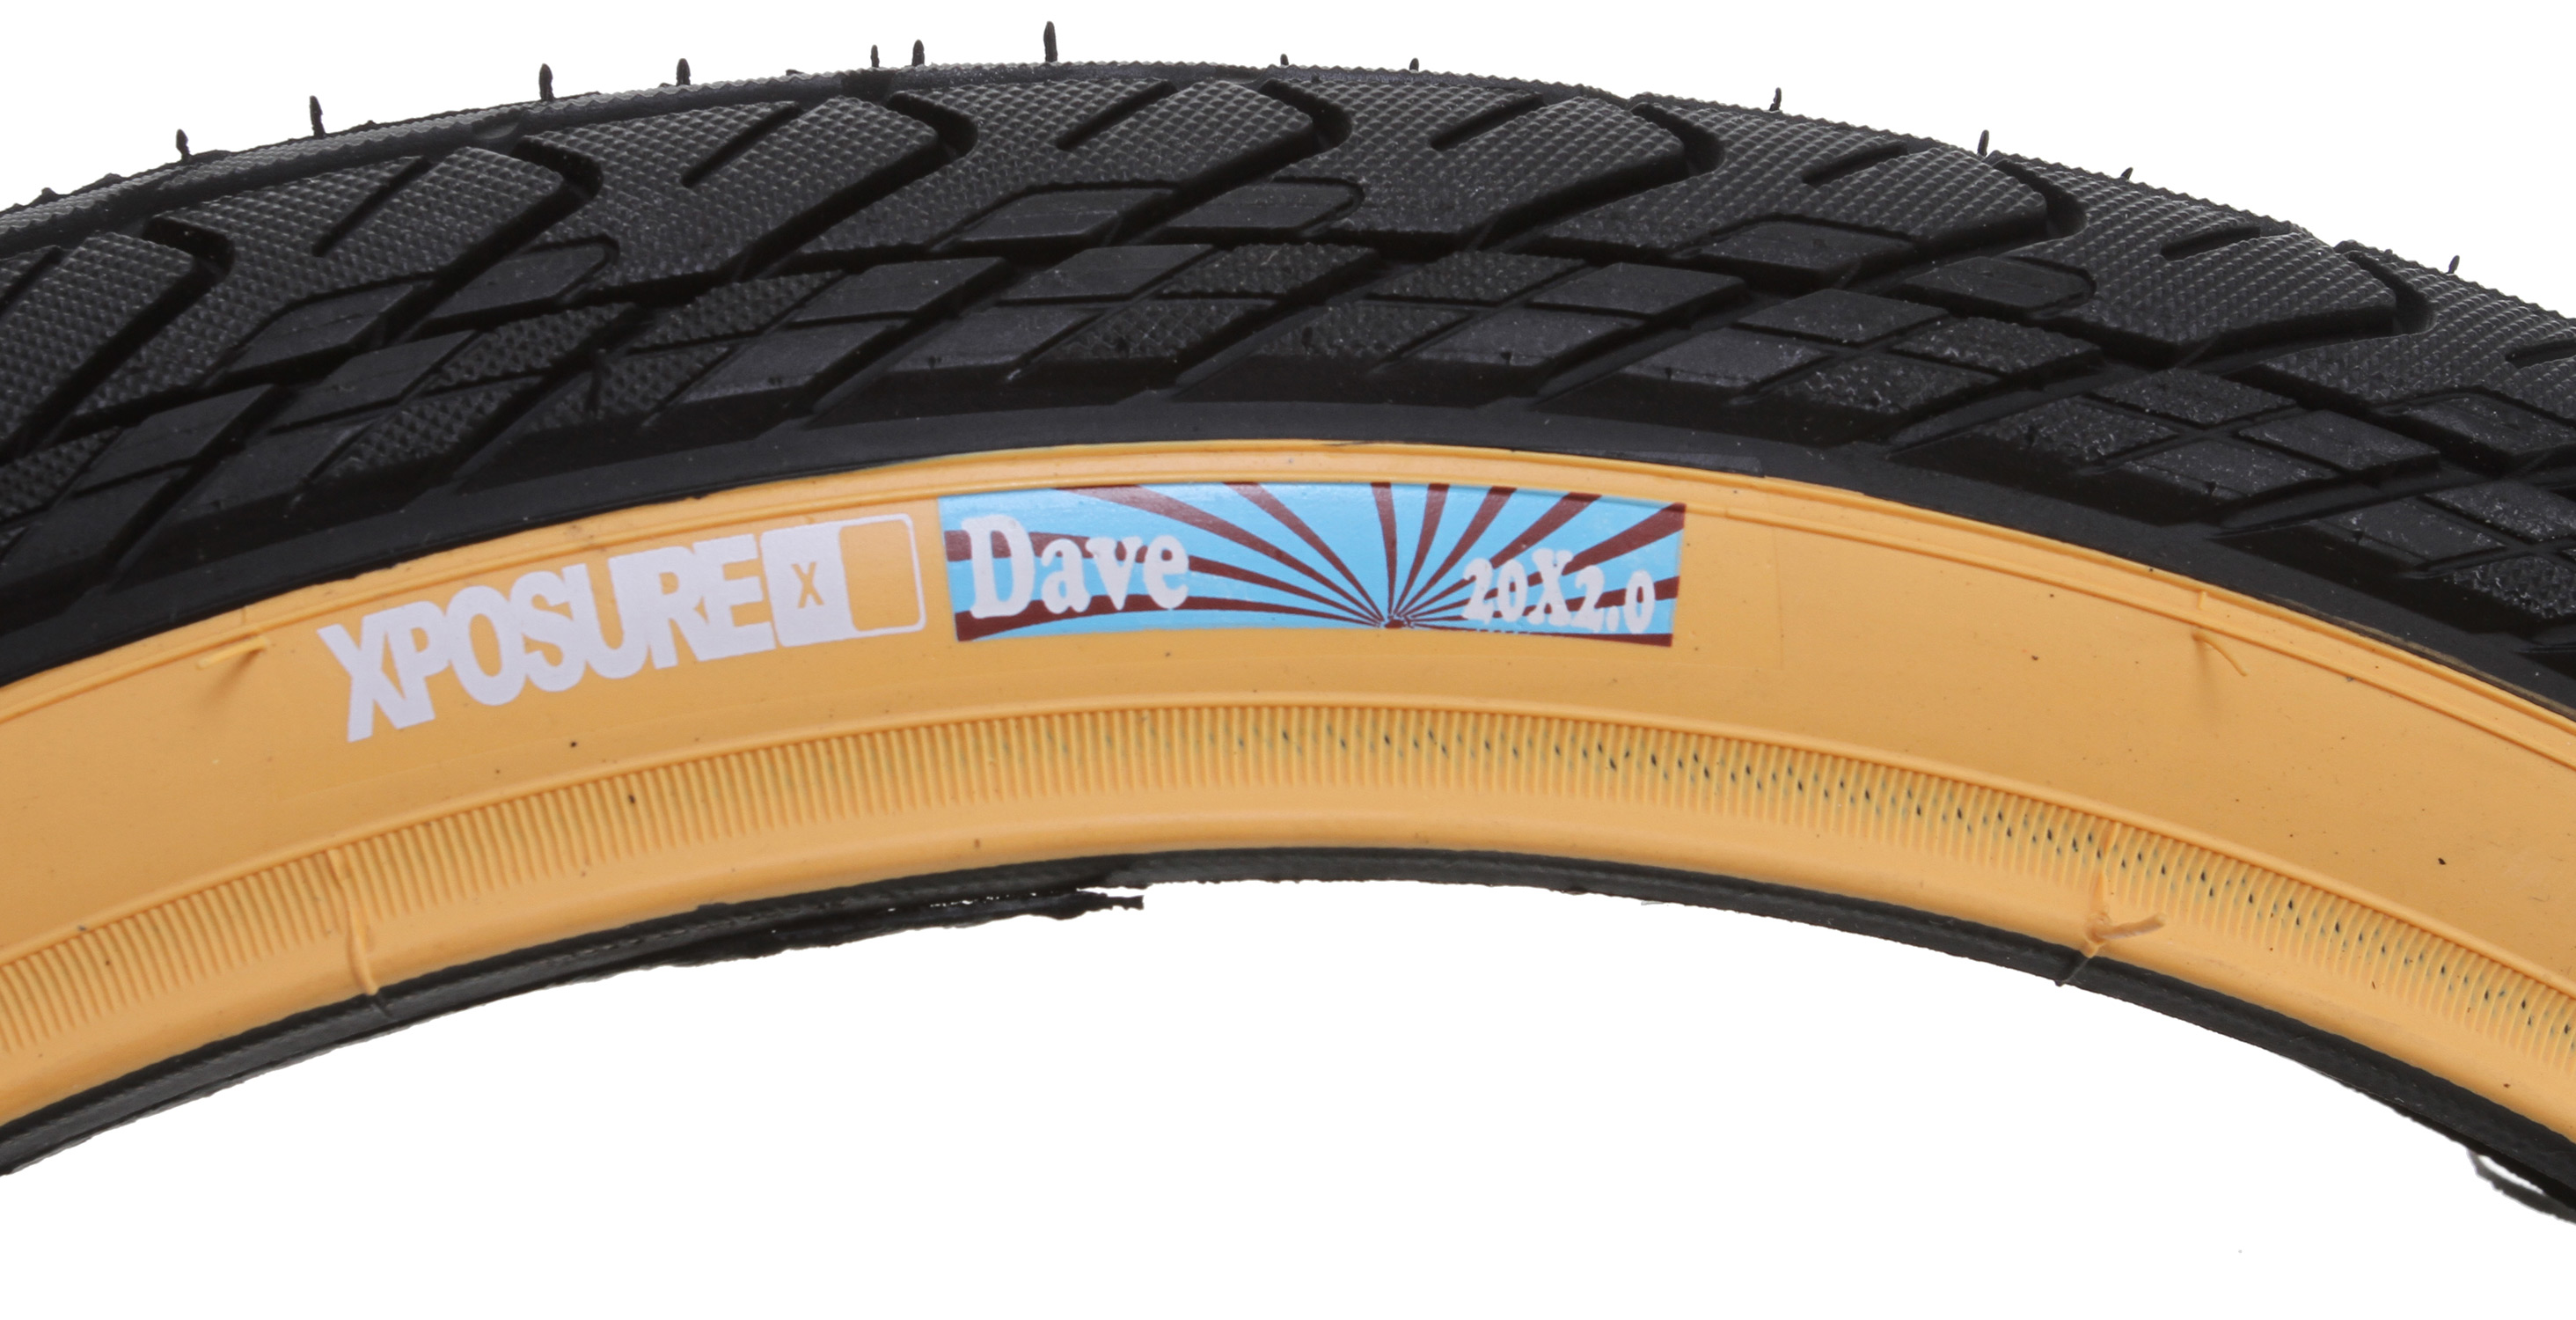 "BMX Key Features of the Xposure Dave Tire 20X2"": Material: Rubber Size: 2.125in Colours: Black / Gum wall / White wall / Red wall Description: wrap around less aggressive tread patter , faster rolling ideal for the back, 60 psi construction Weight: N/A - $10.95"